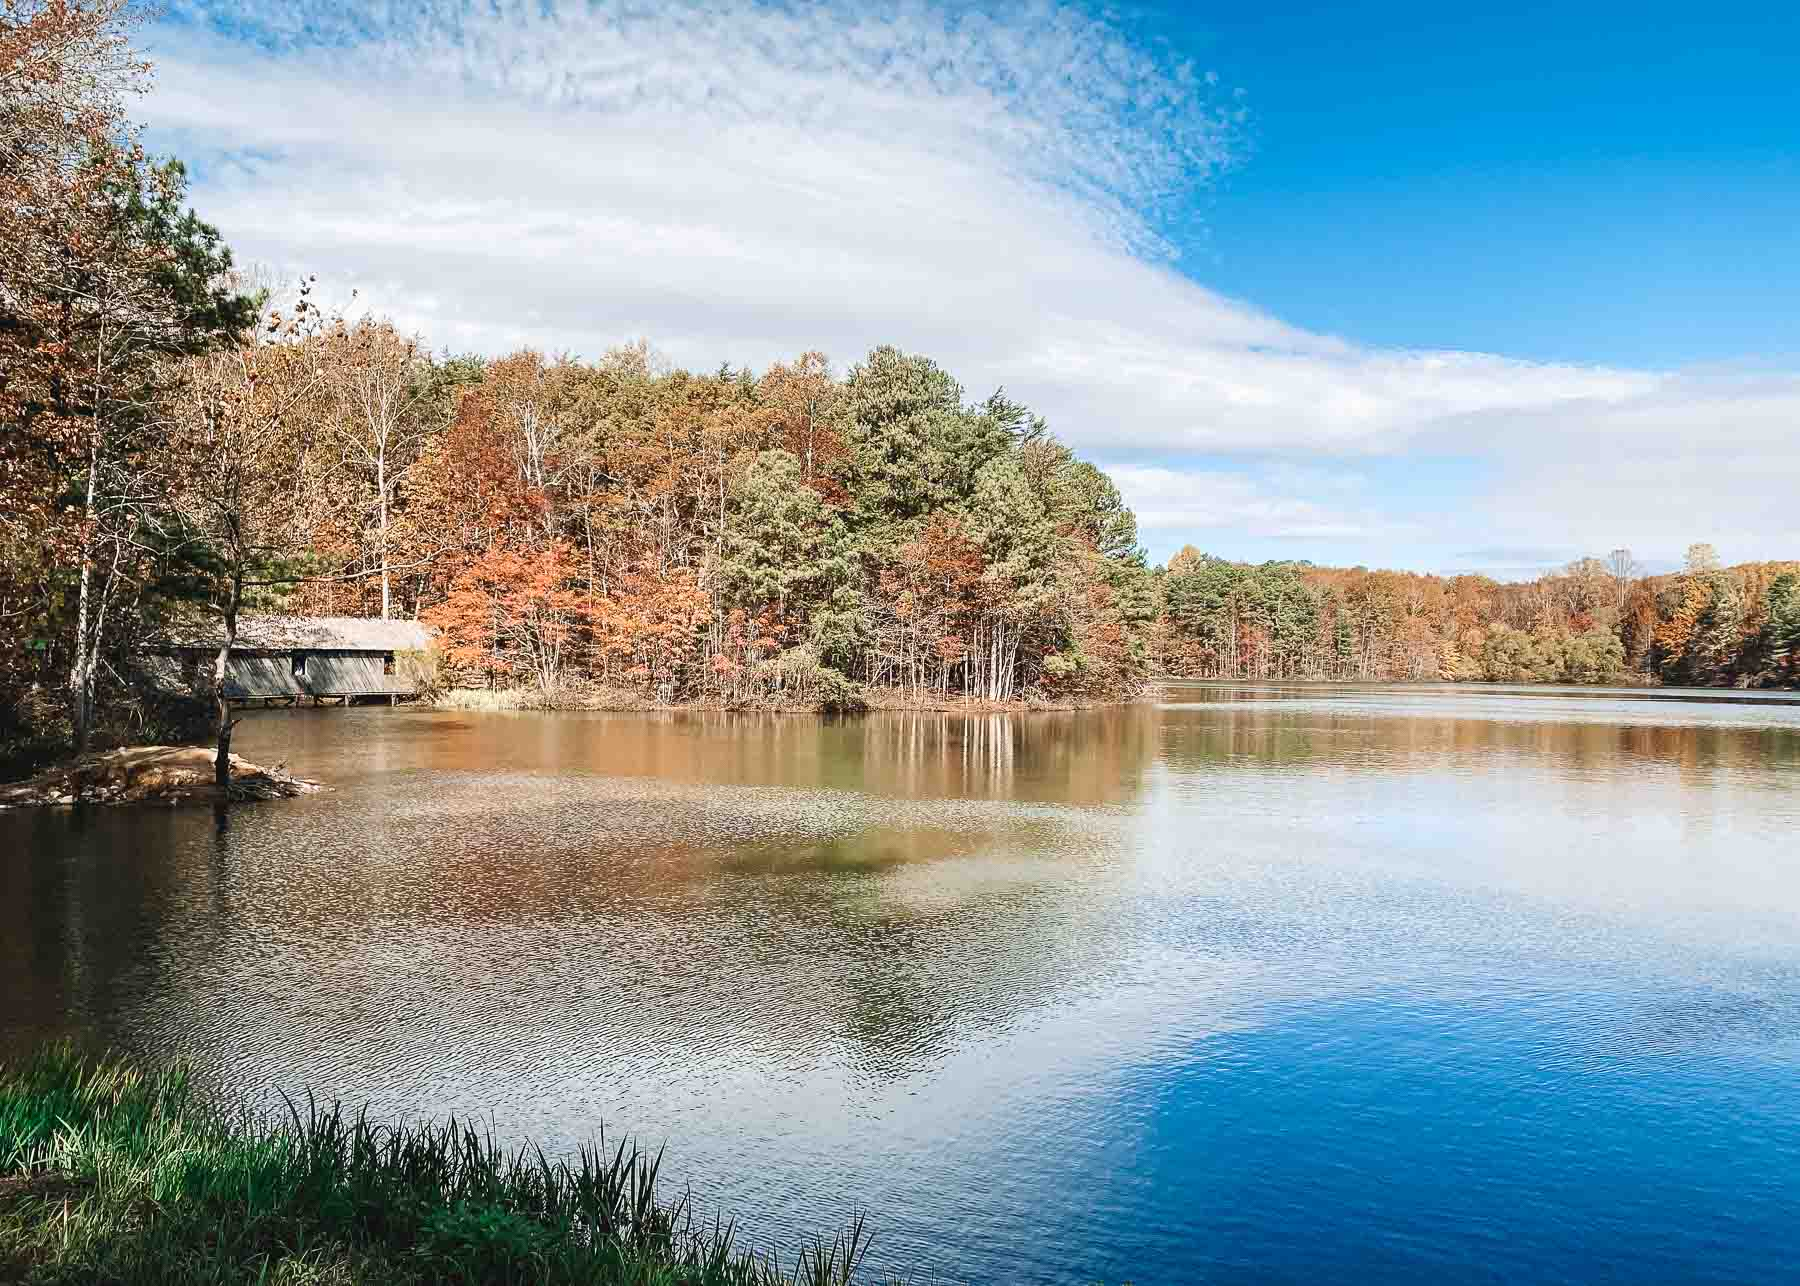 weekend road trip - lake in huntsville alabama surrounded by fall trees. there is a covered wooden bridge to the left of the lake.